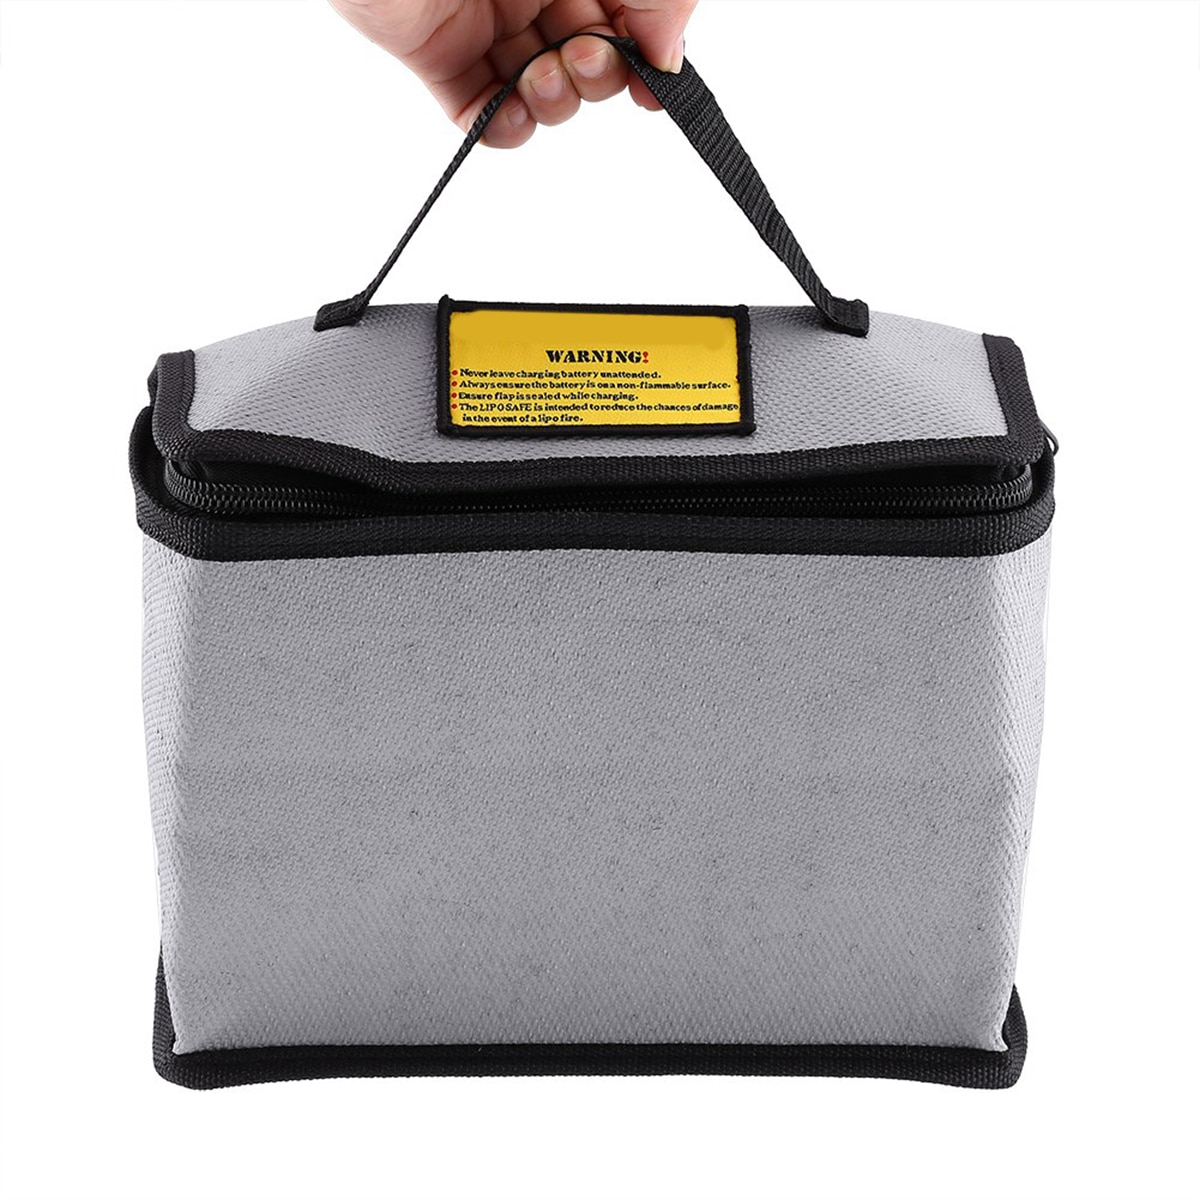 Fireproof LiPo Battery Safety Storage Bag Glass Fiber Protecting Battery Pouch Portable Phone Power Charging Package Sack